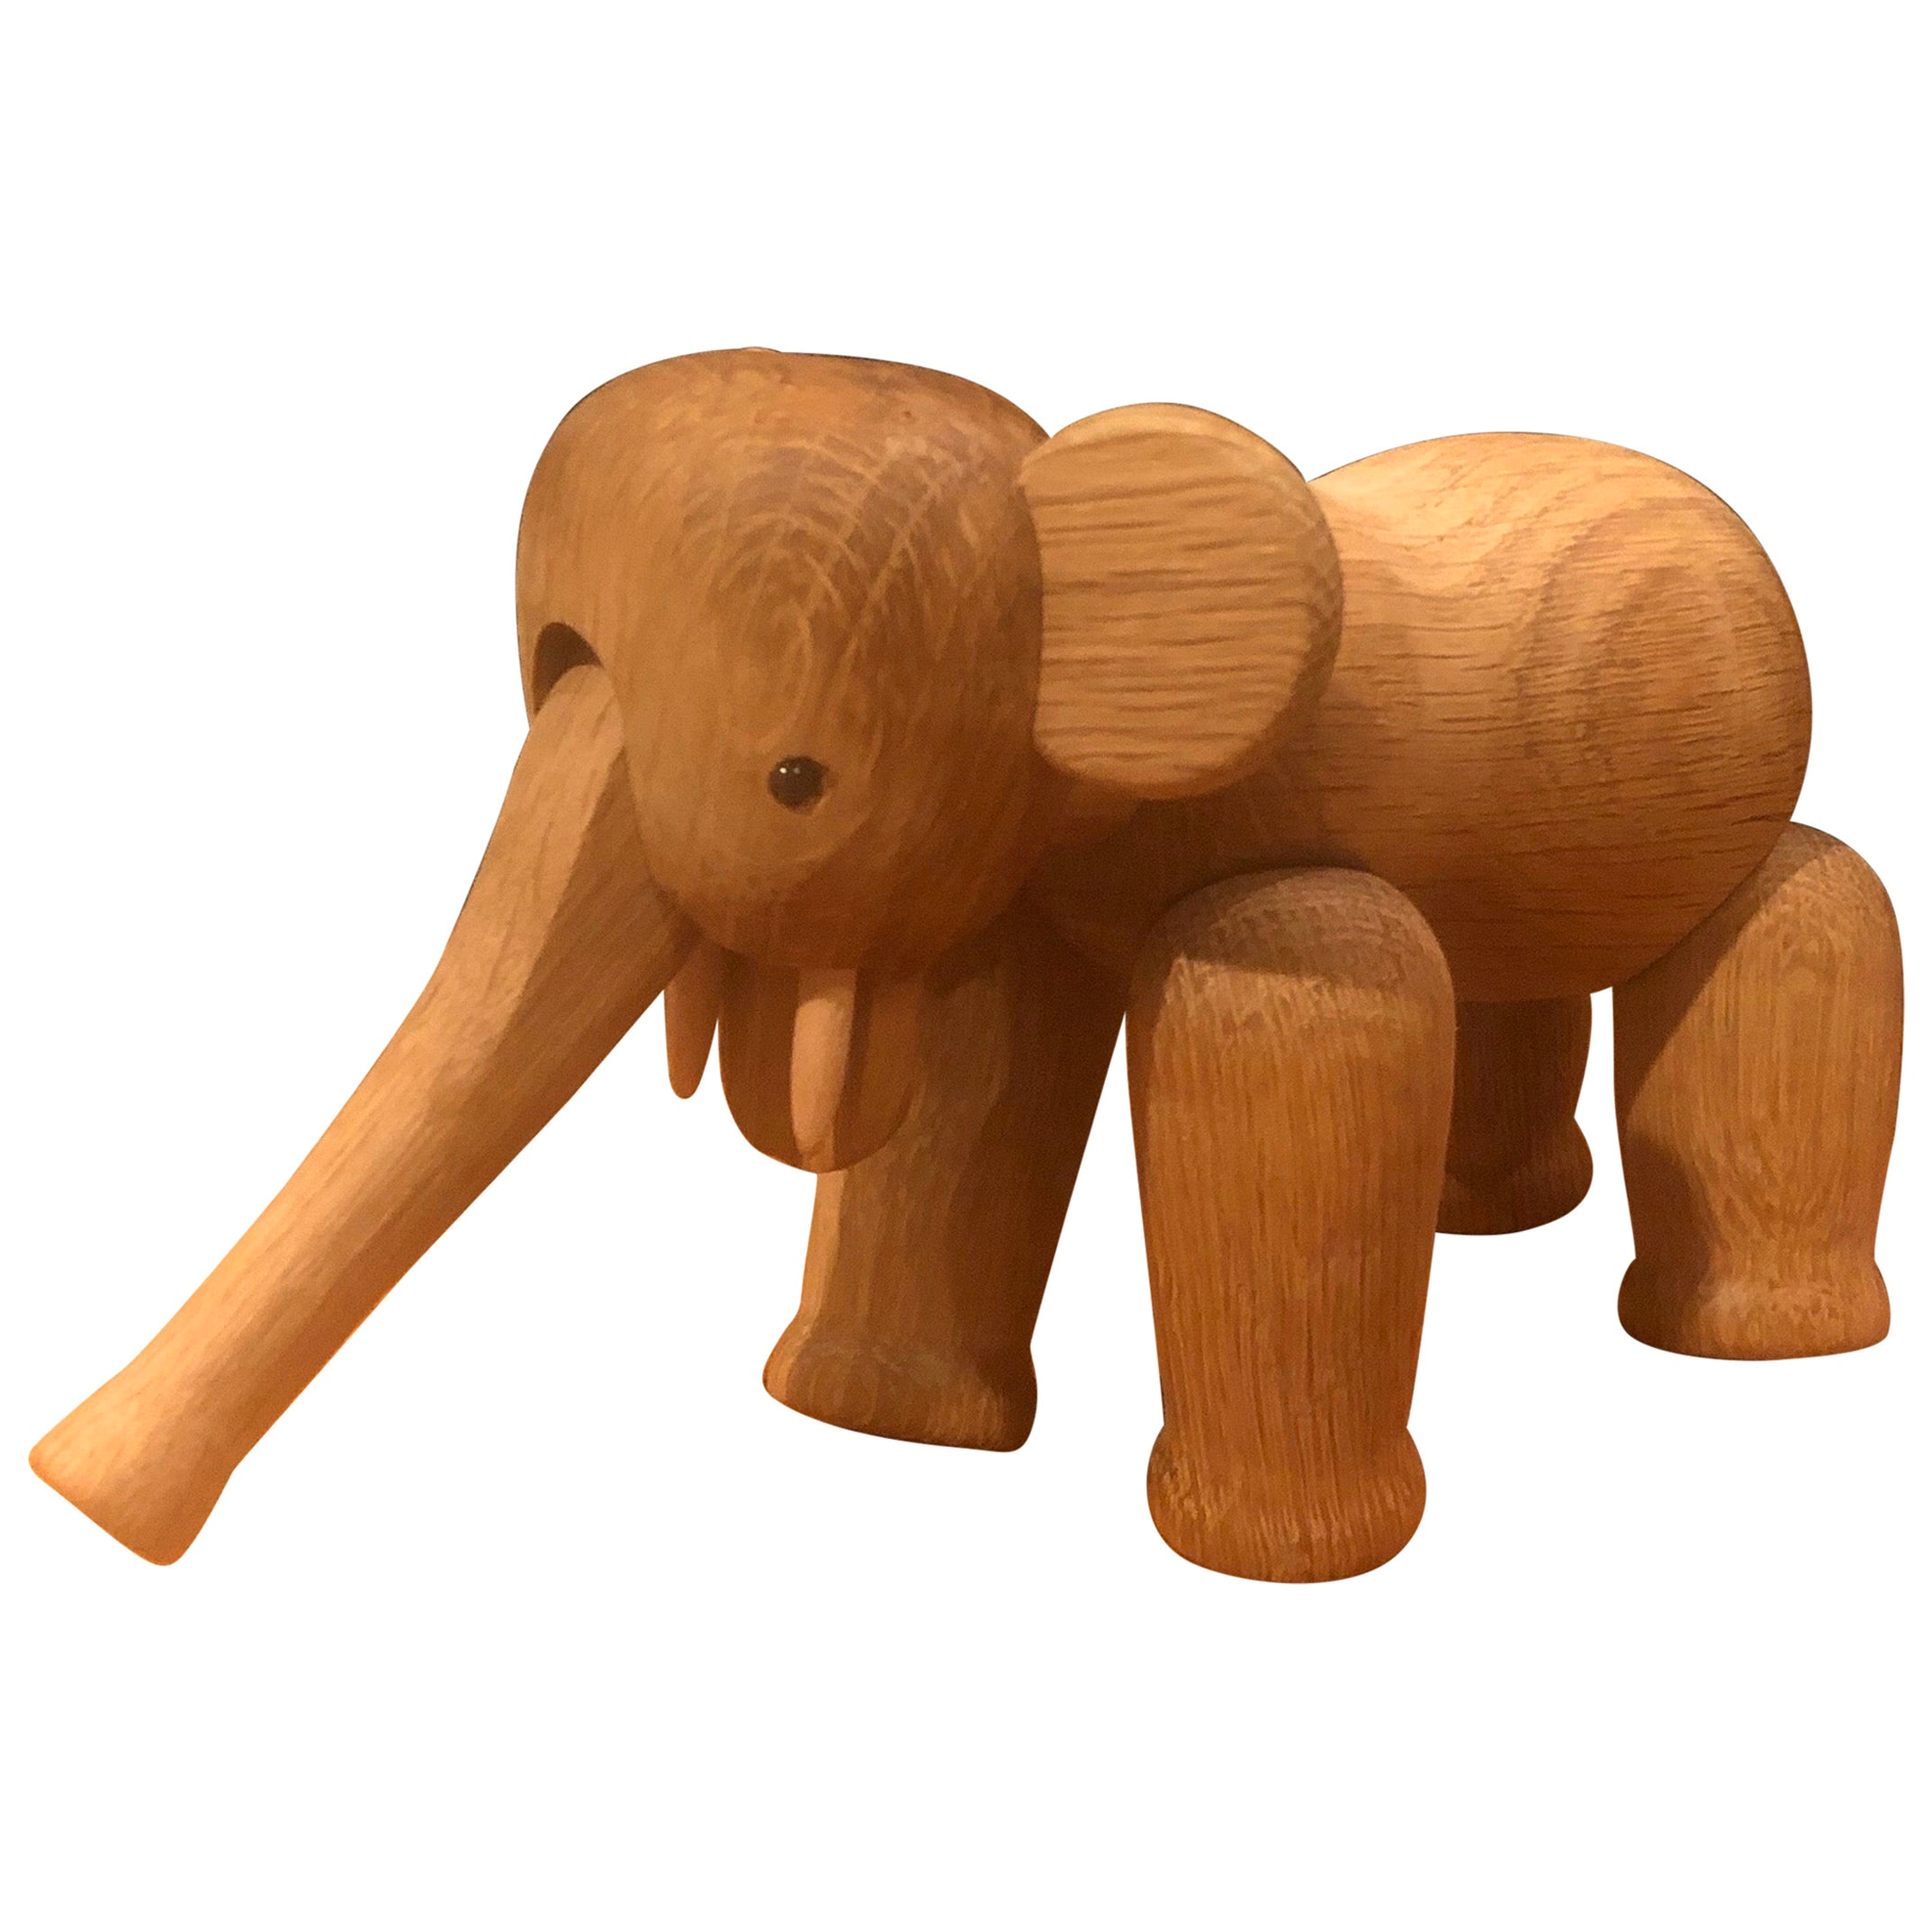 Articulated Toy Elephant by Kay Bojesen